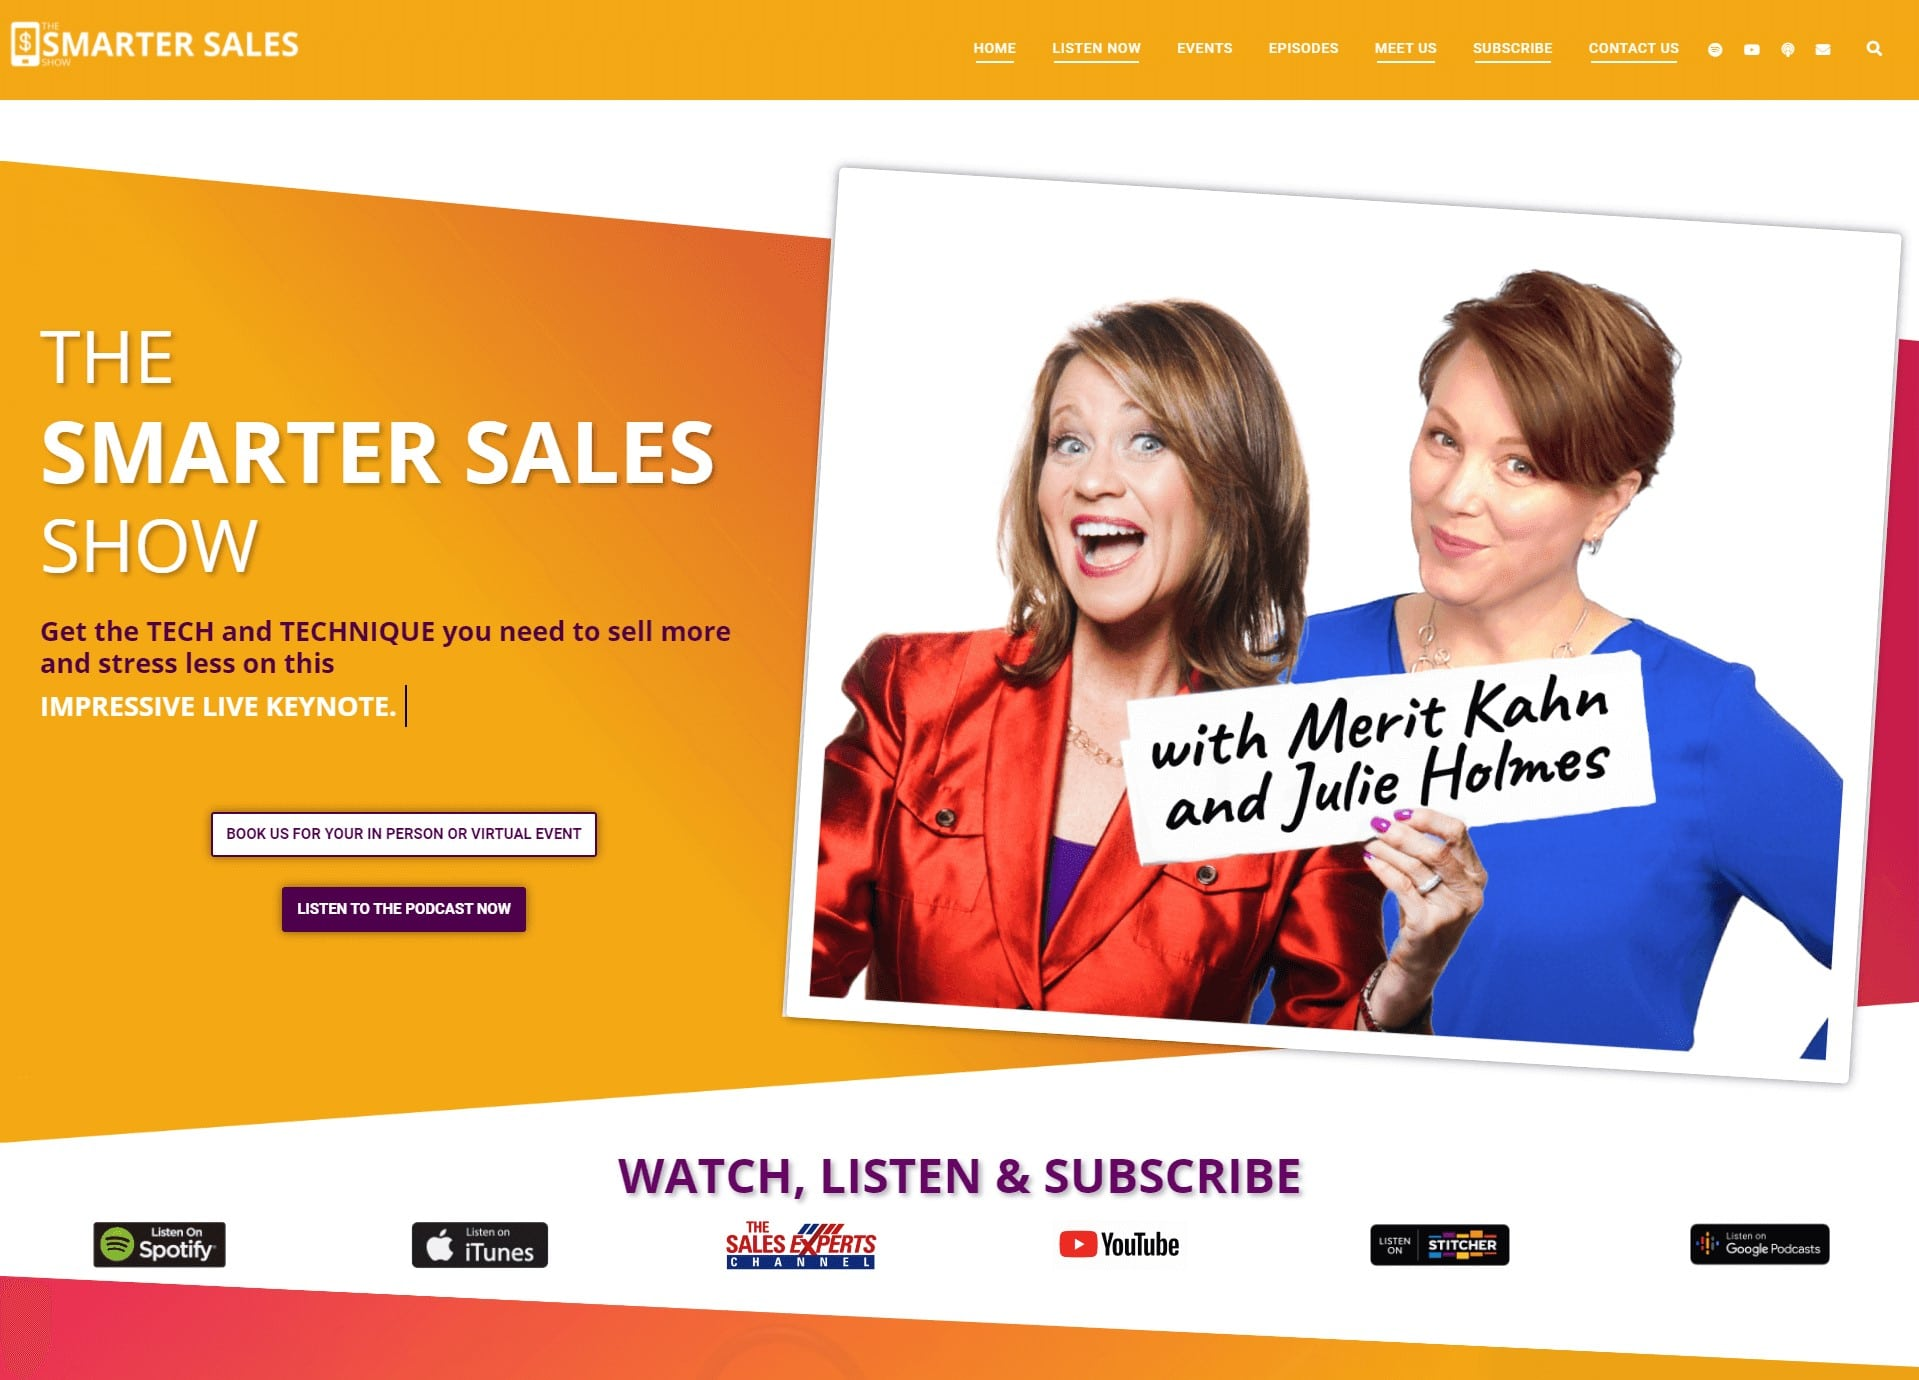 the smarter sales show landing page